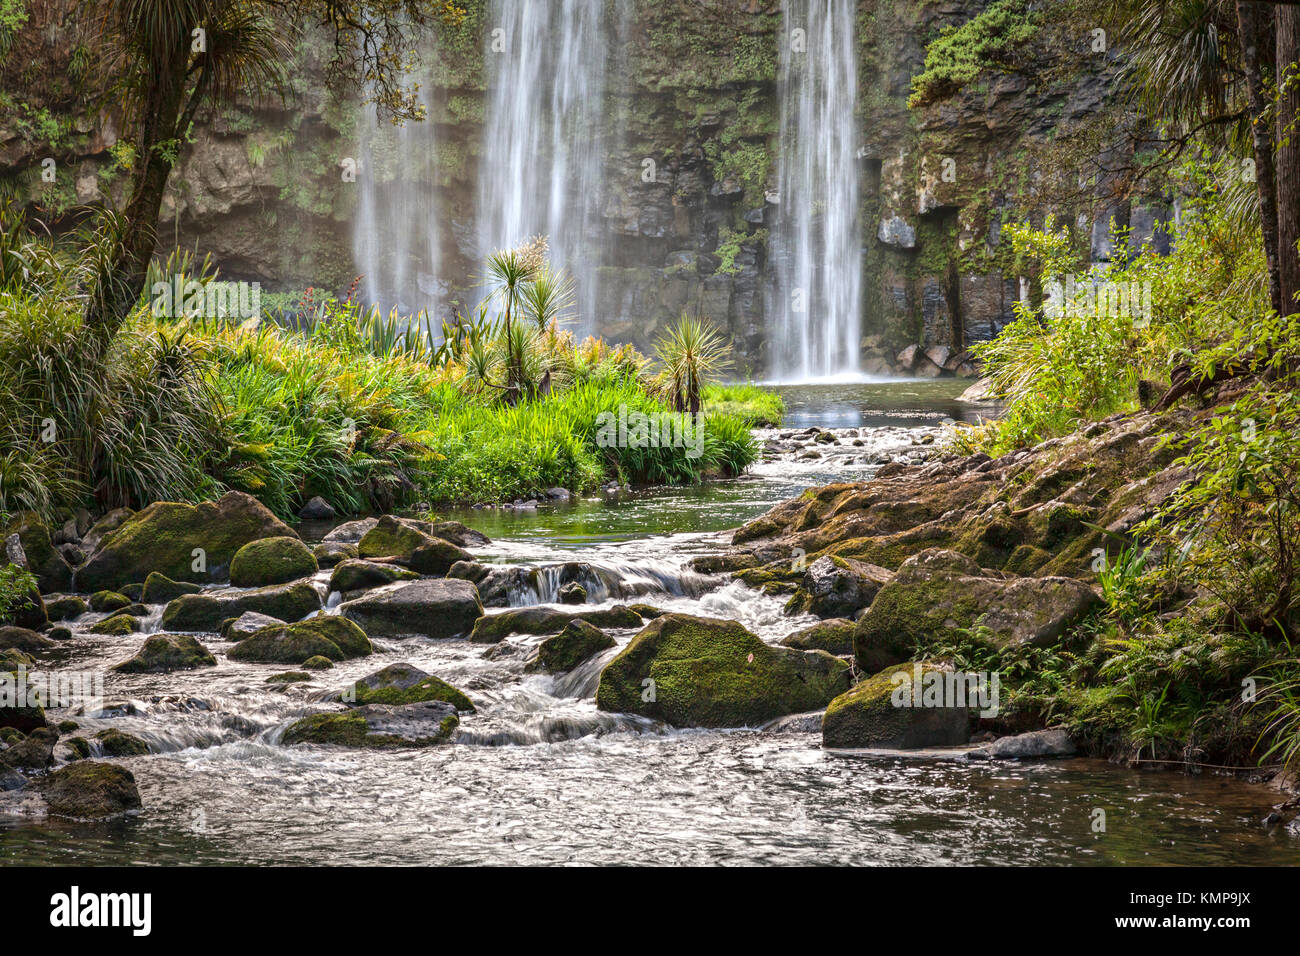 The Hatea River below the Whangarei Falls in Northland, New Zealand. - Stock Image